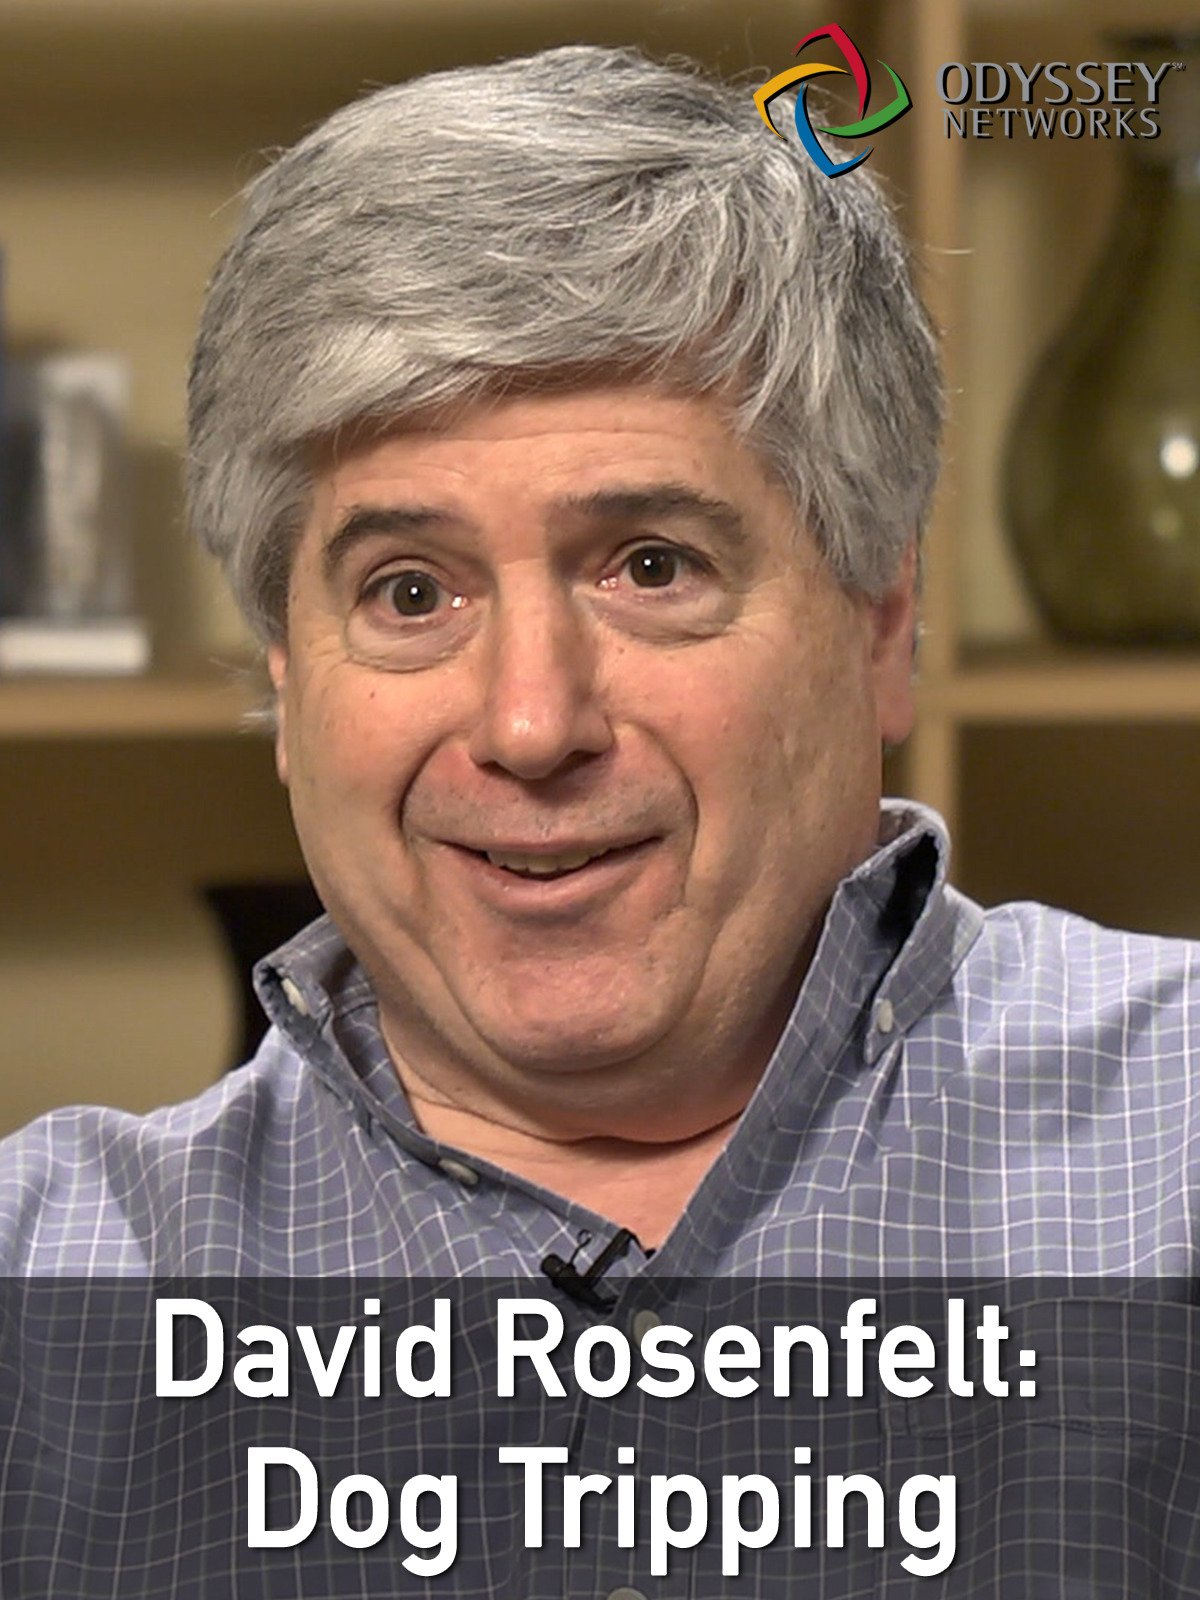 Clip: David Rosenfelt: Dog Tripping